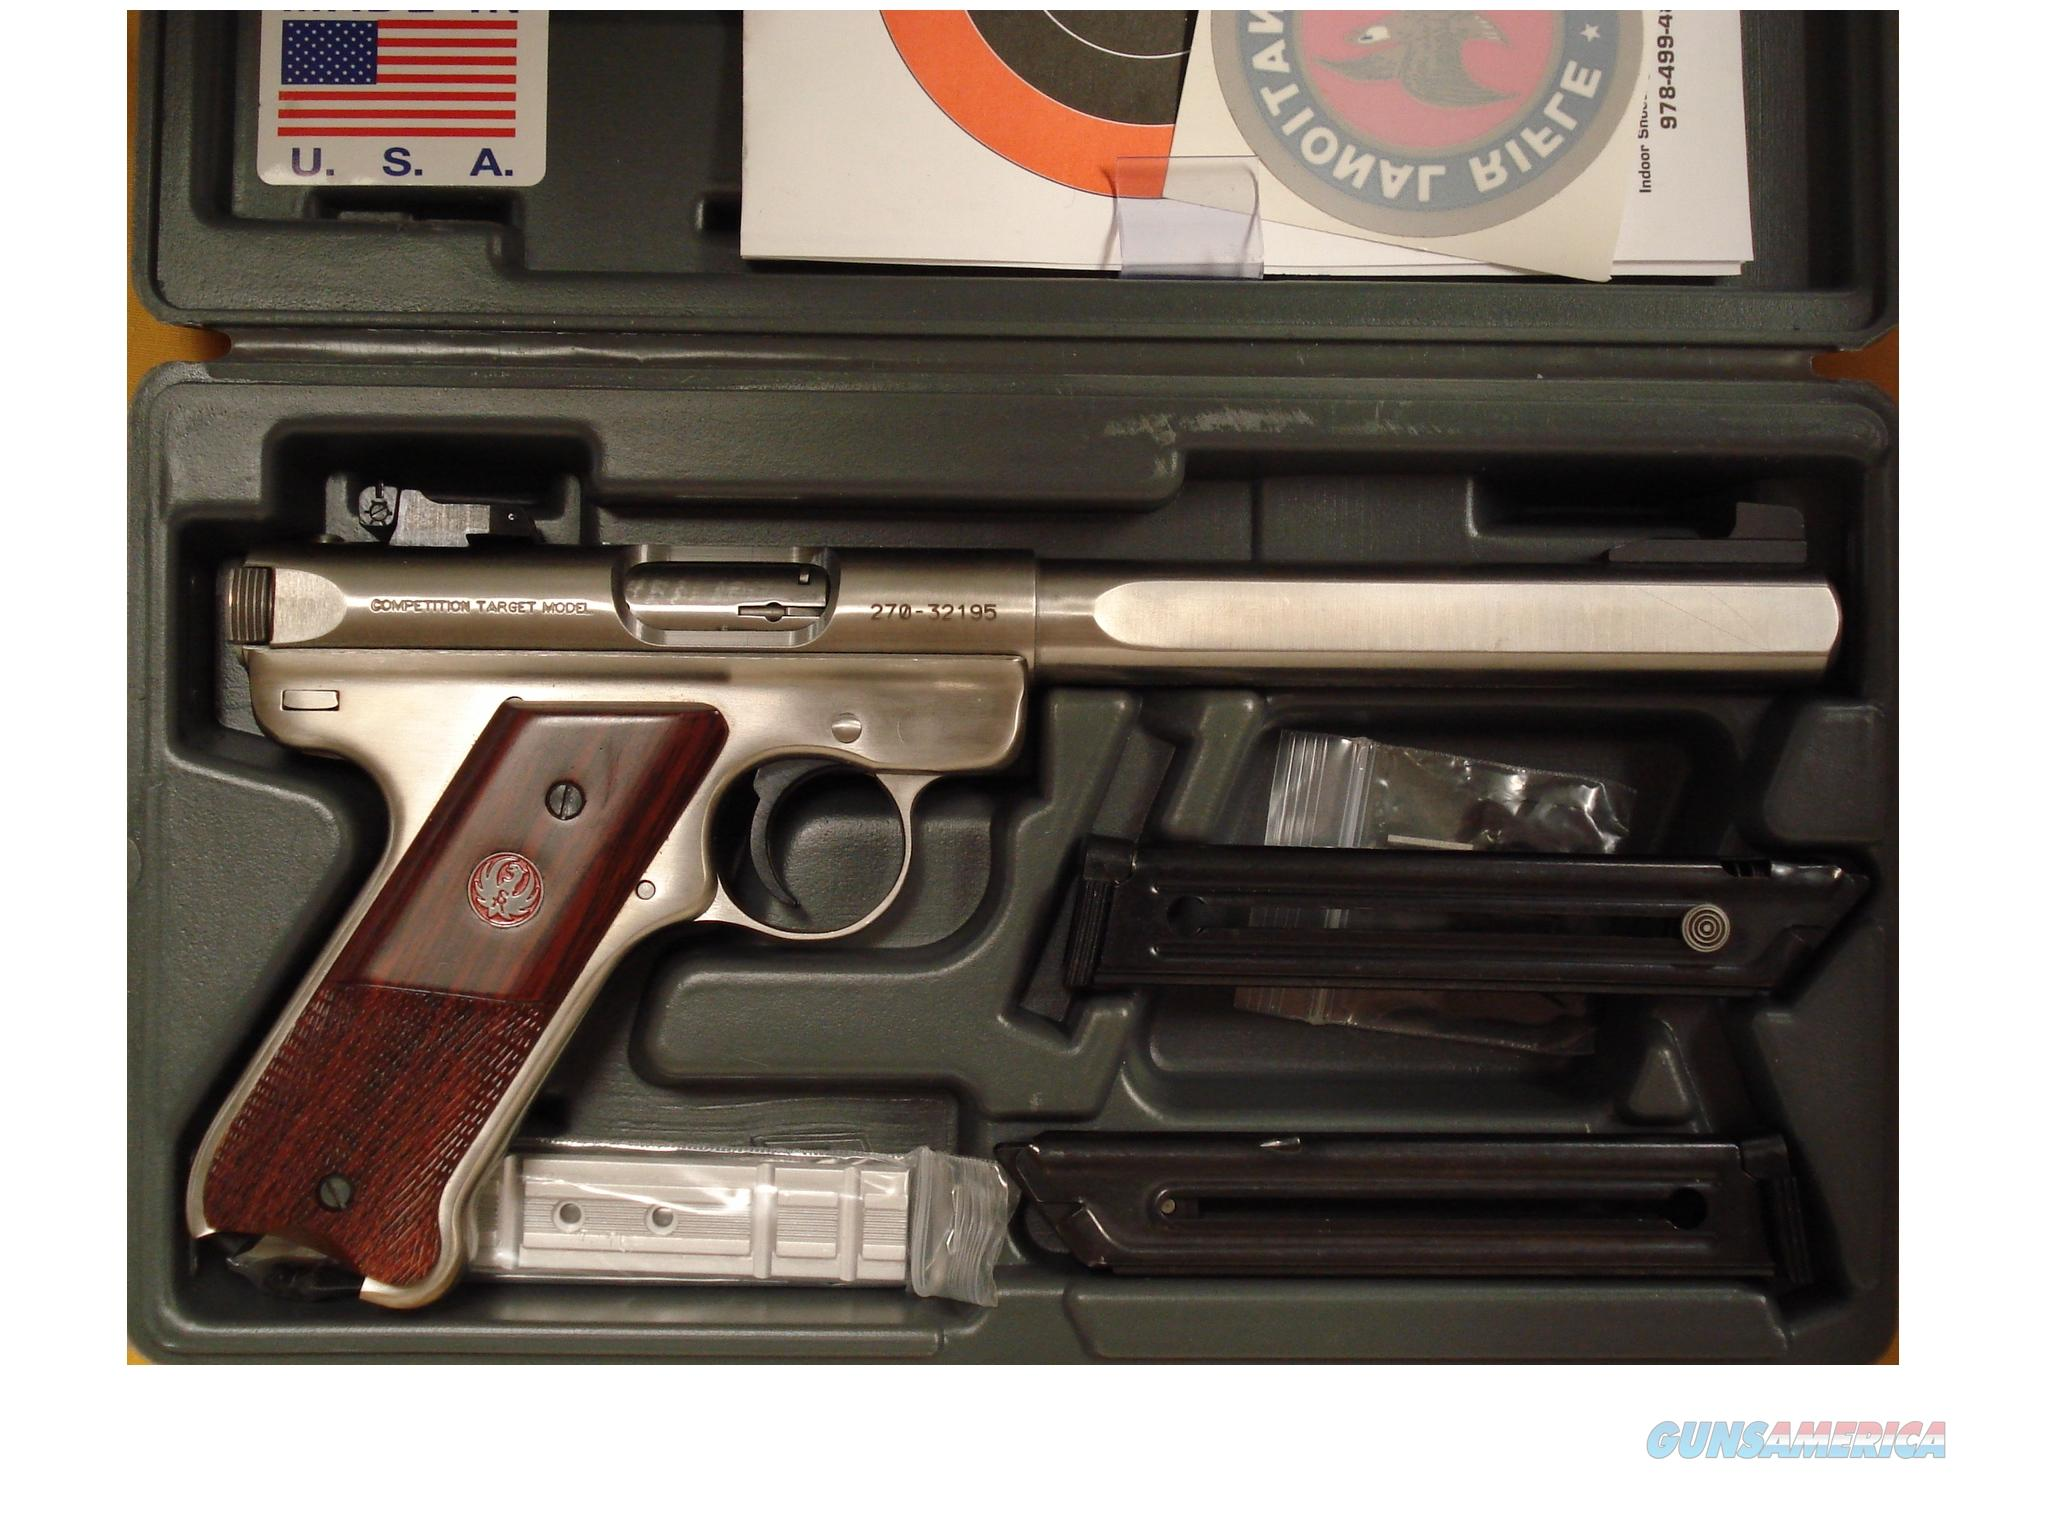 "RUGER MKIII COMPETITIONTARGET .22LR 6 3/4"" BARREL  Guns > Pistols > Ruger Semi-Auto Pistols > Mark I & II Family"